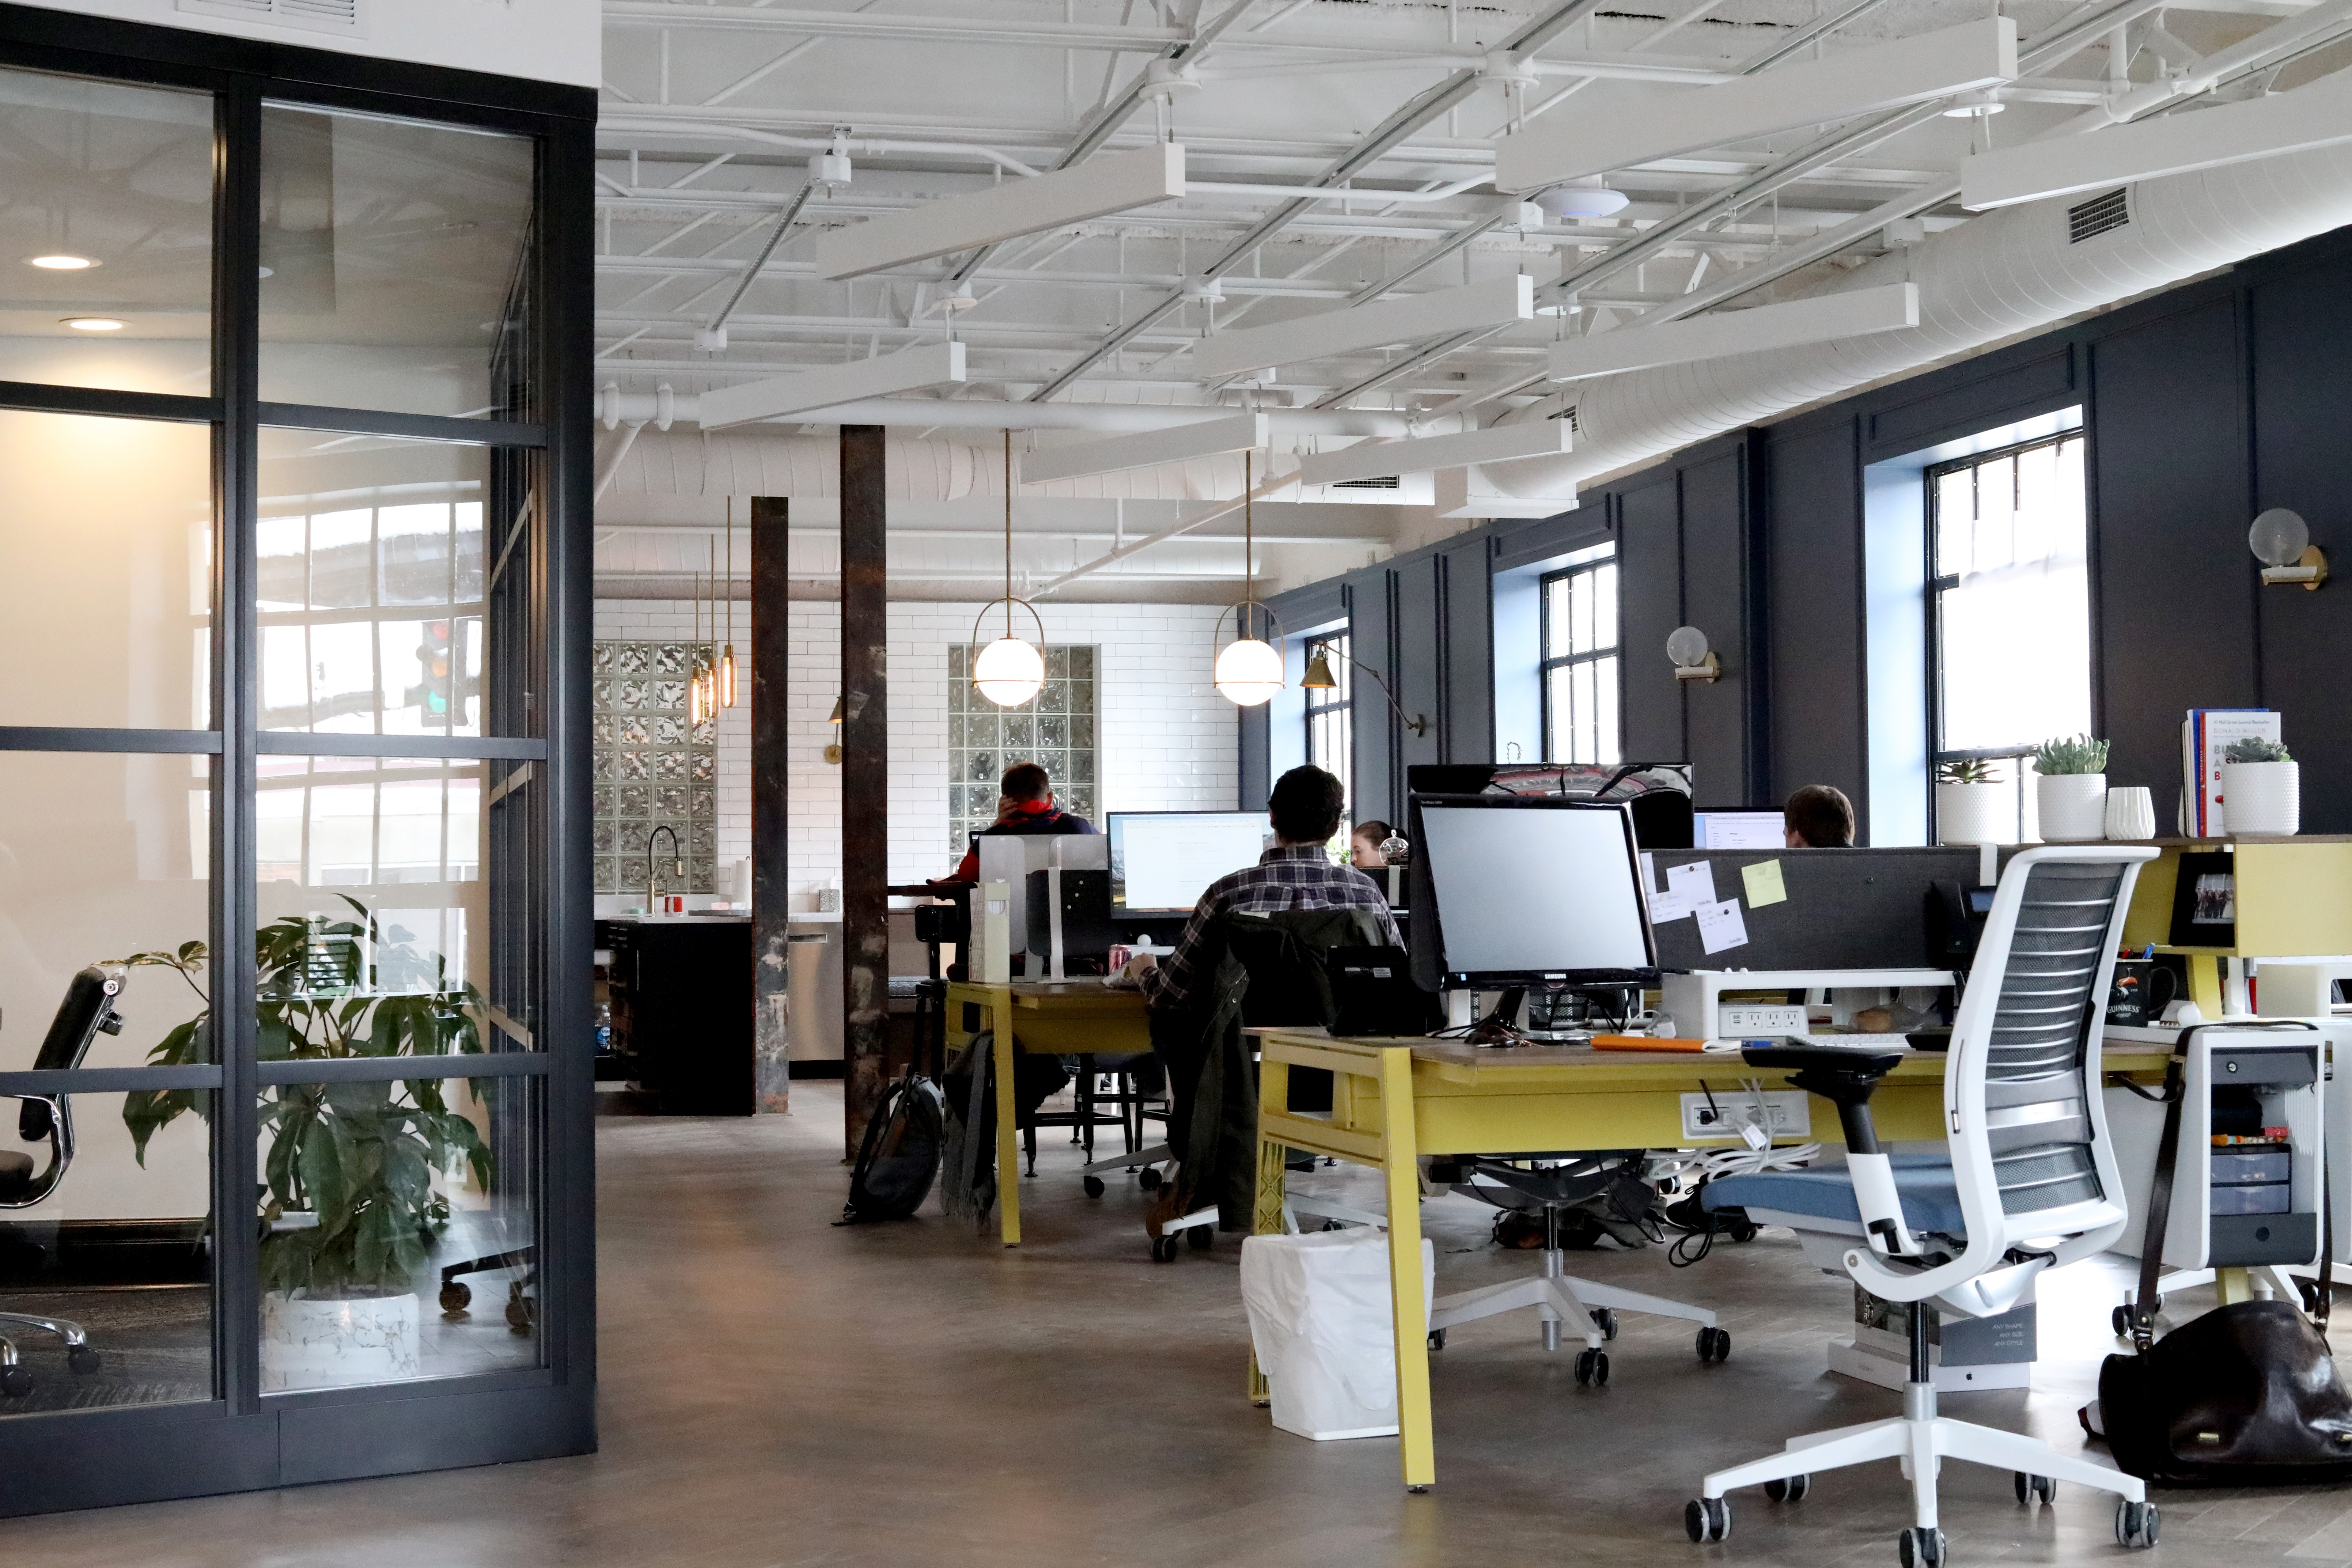 Depending On The Type Of Work Being Done, Different Office Space Designs  May Be Necessary. For Instance, In A Professional Service Firm Where People  Are ...